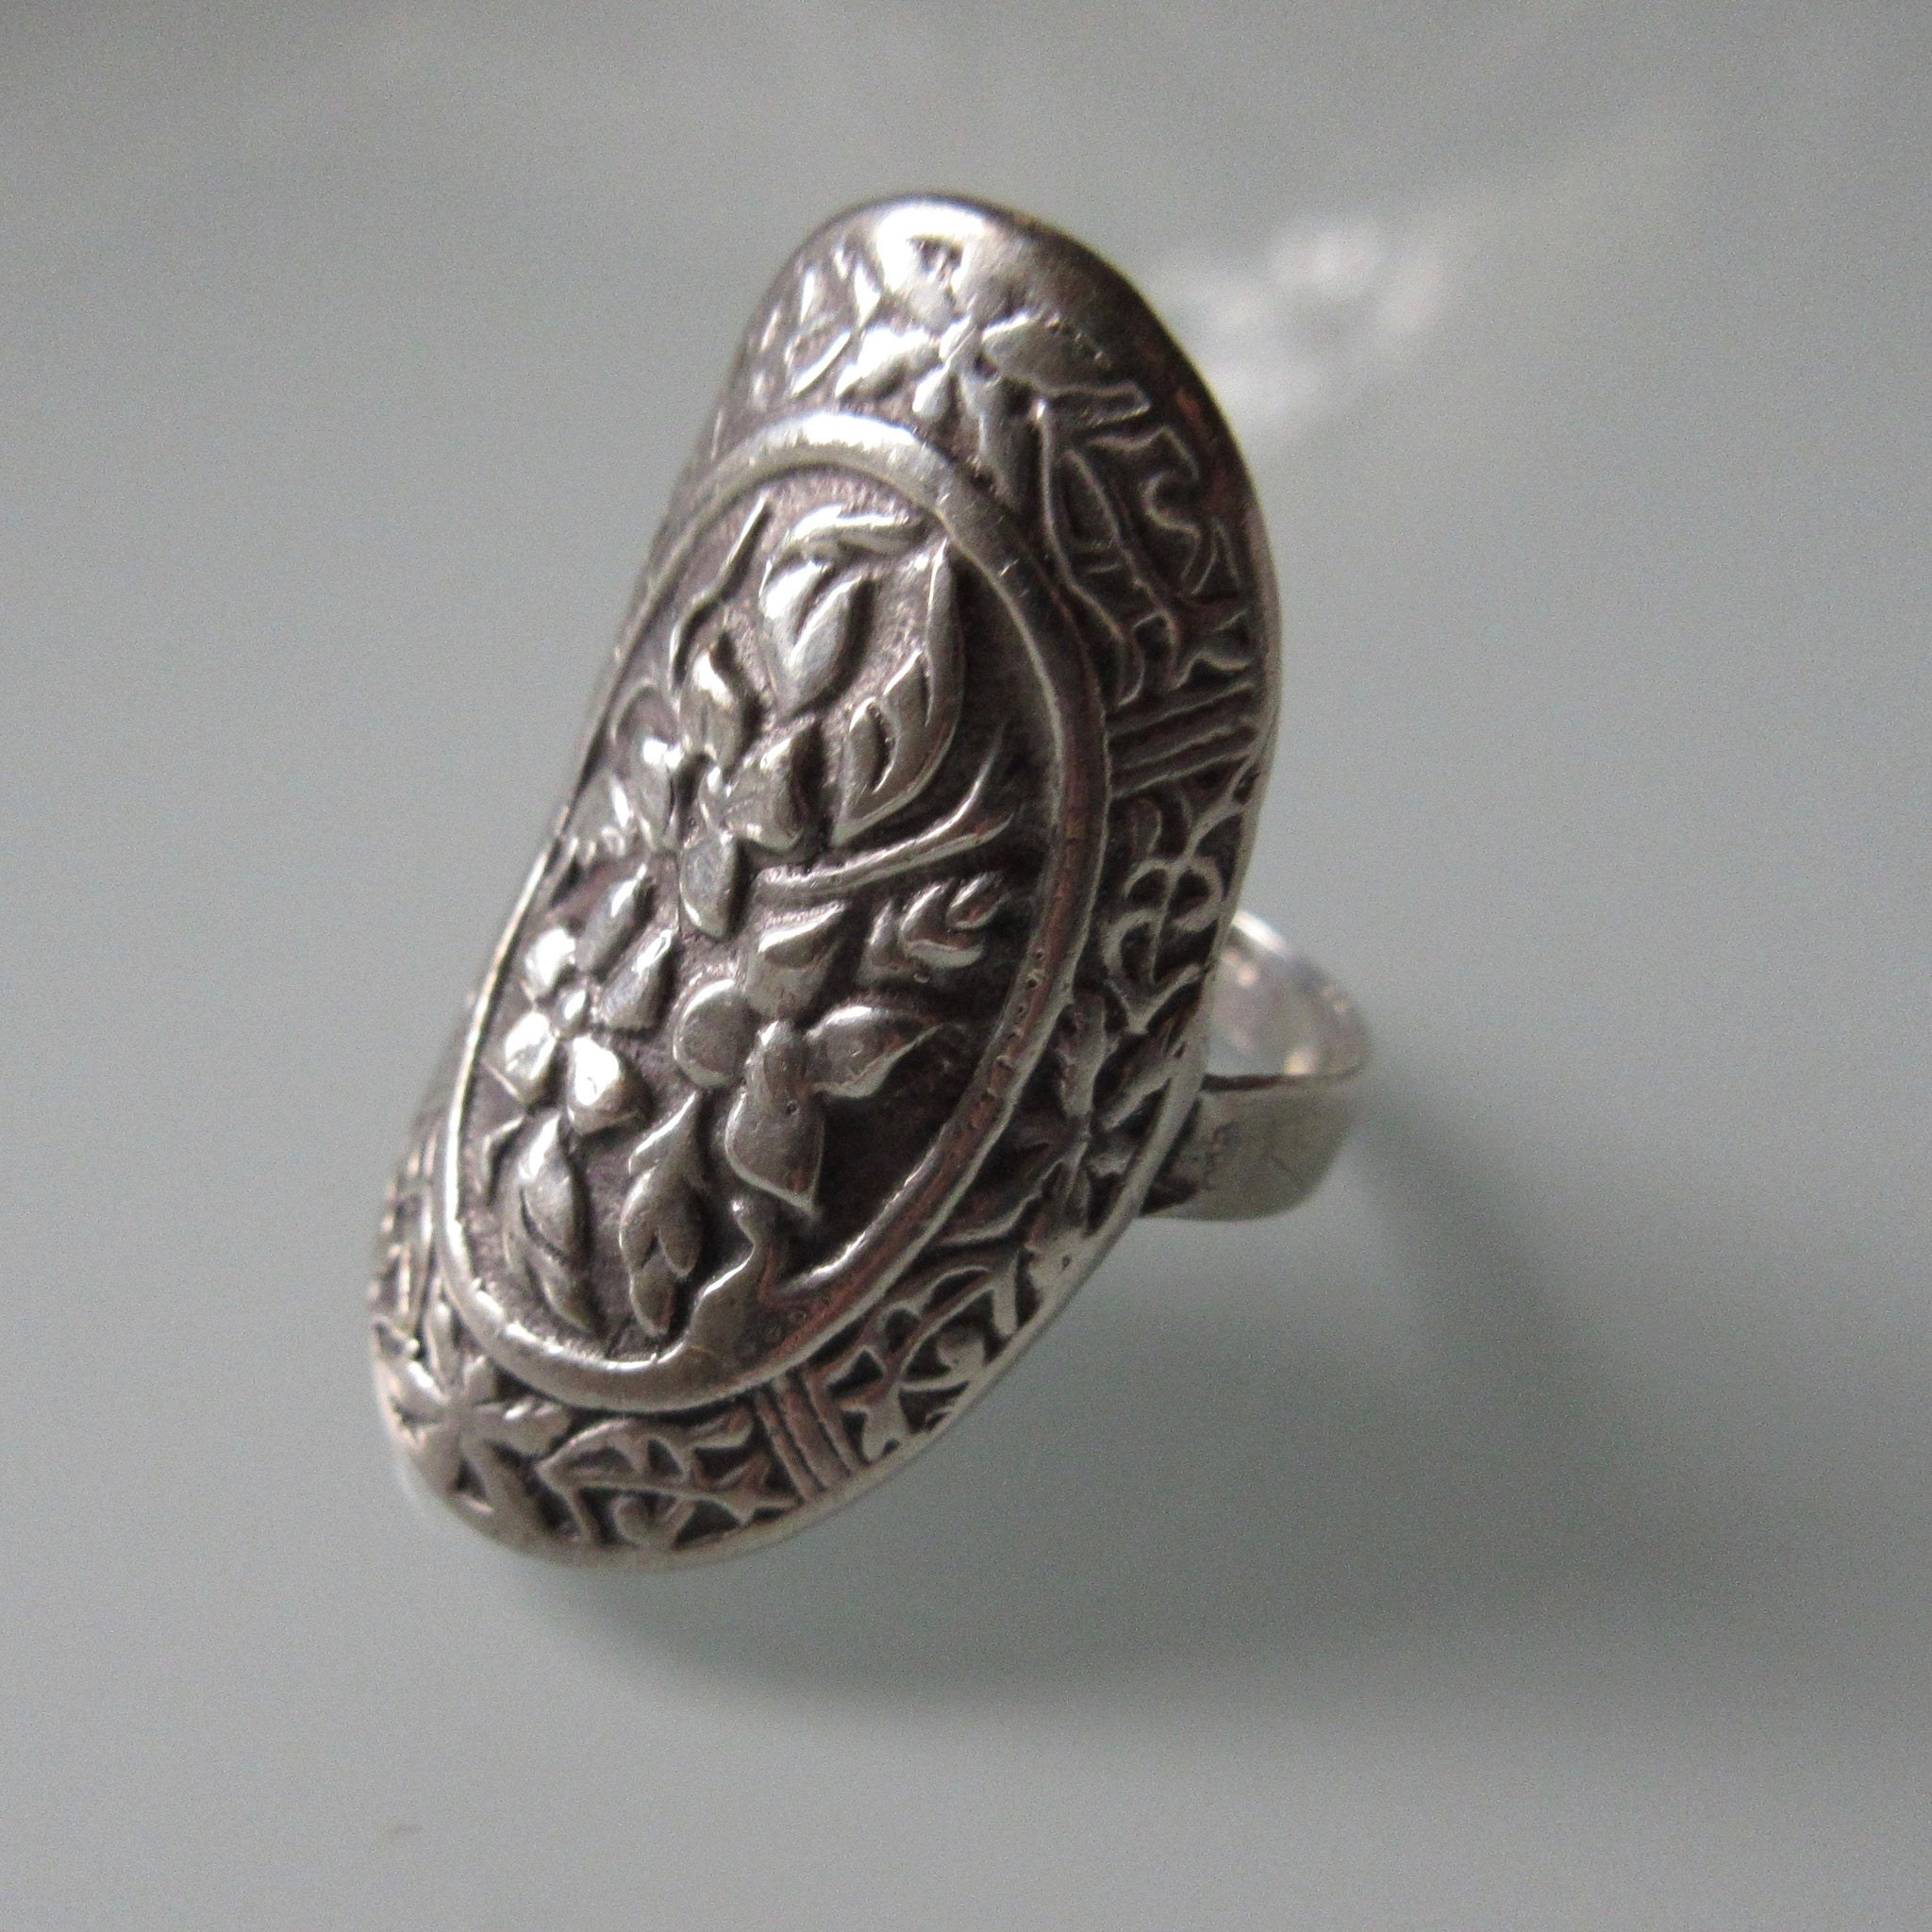 Vintage Sterling Silver Repousee Floral Ring